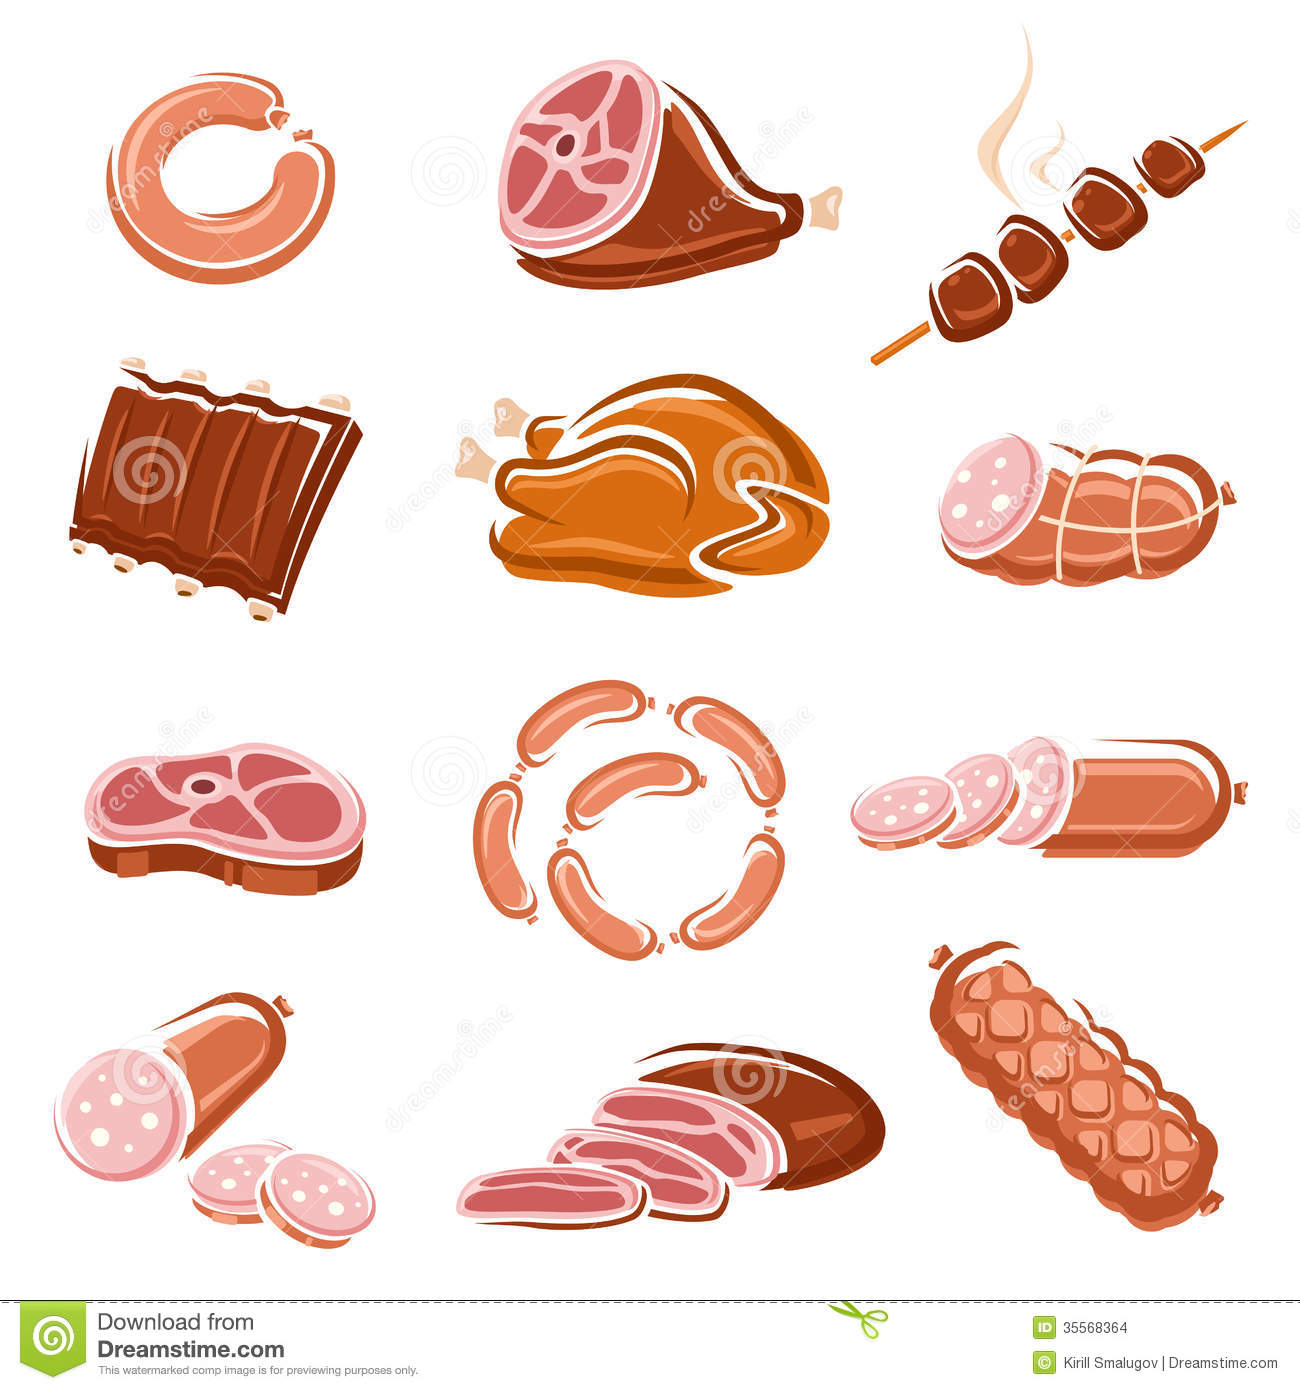 Stock Images Meat Food Set Vector File Eps Format Image35568364 on types of ham cold cuts